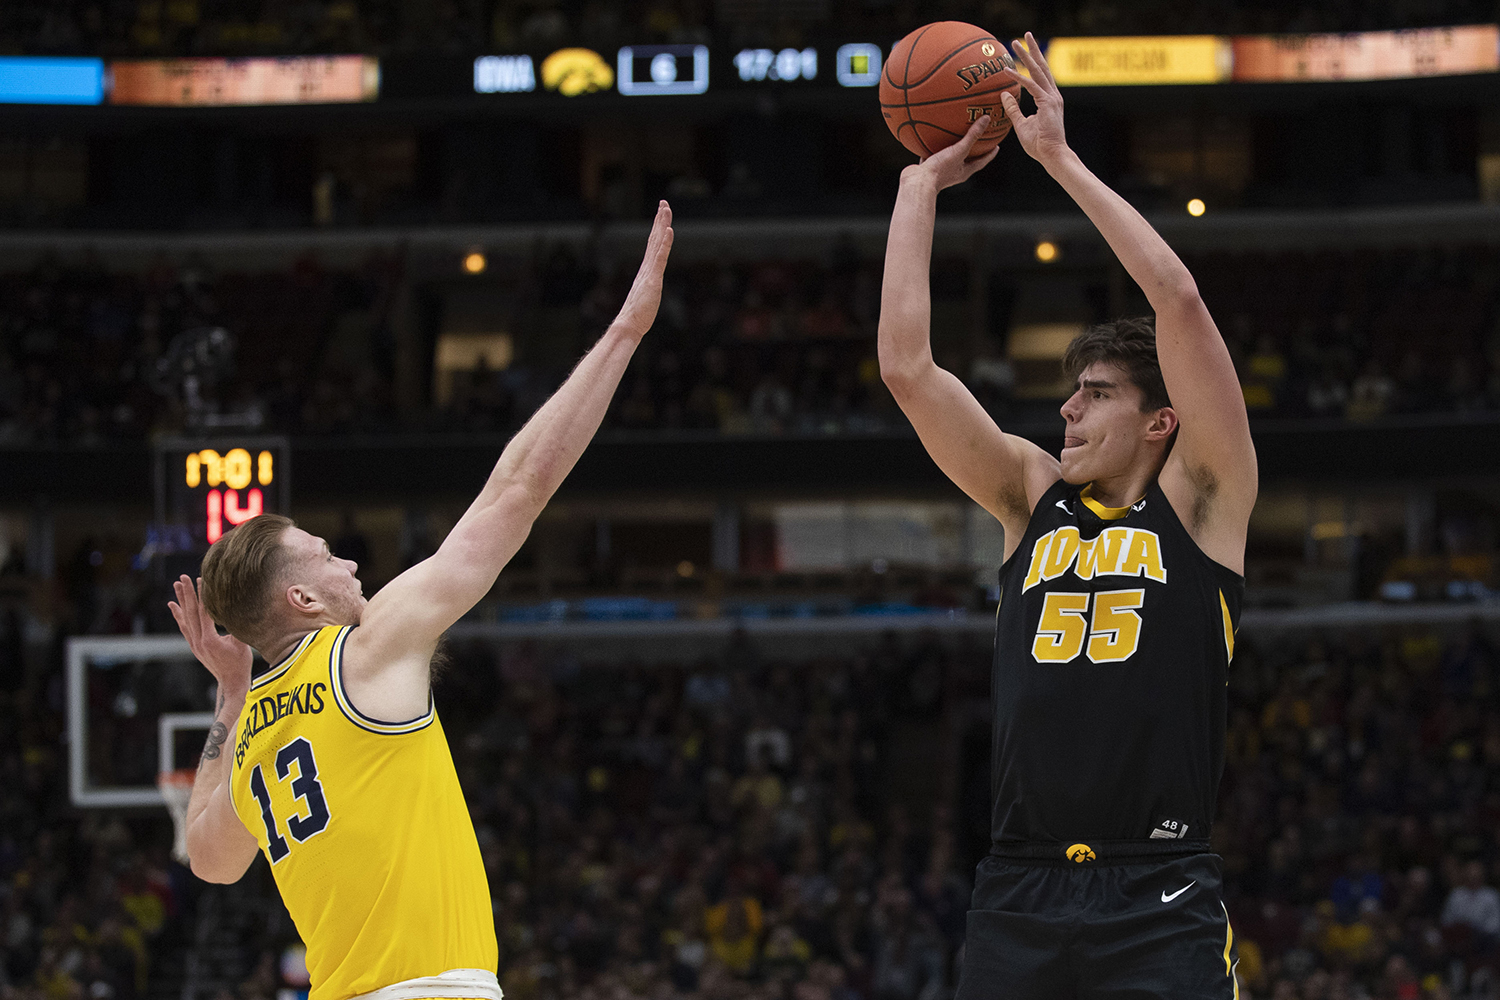 Iowa forward Luka Garza attempts a shot over Michigan forward Ignas Bradzeikis during the Iowa/Michigan Big Ten Tournament men's basketball game in the United Center in Chicago on Friday, March 15, 2019. The Wolverines lead the Hawkeyes, 40-27, at the half.